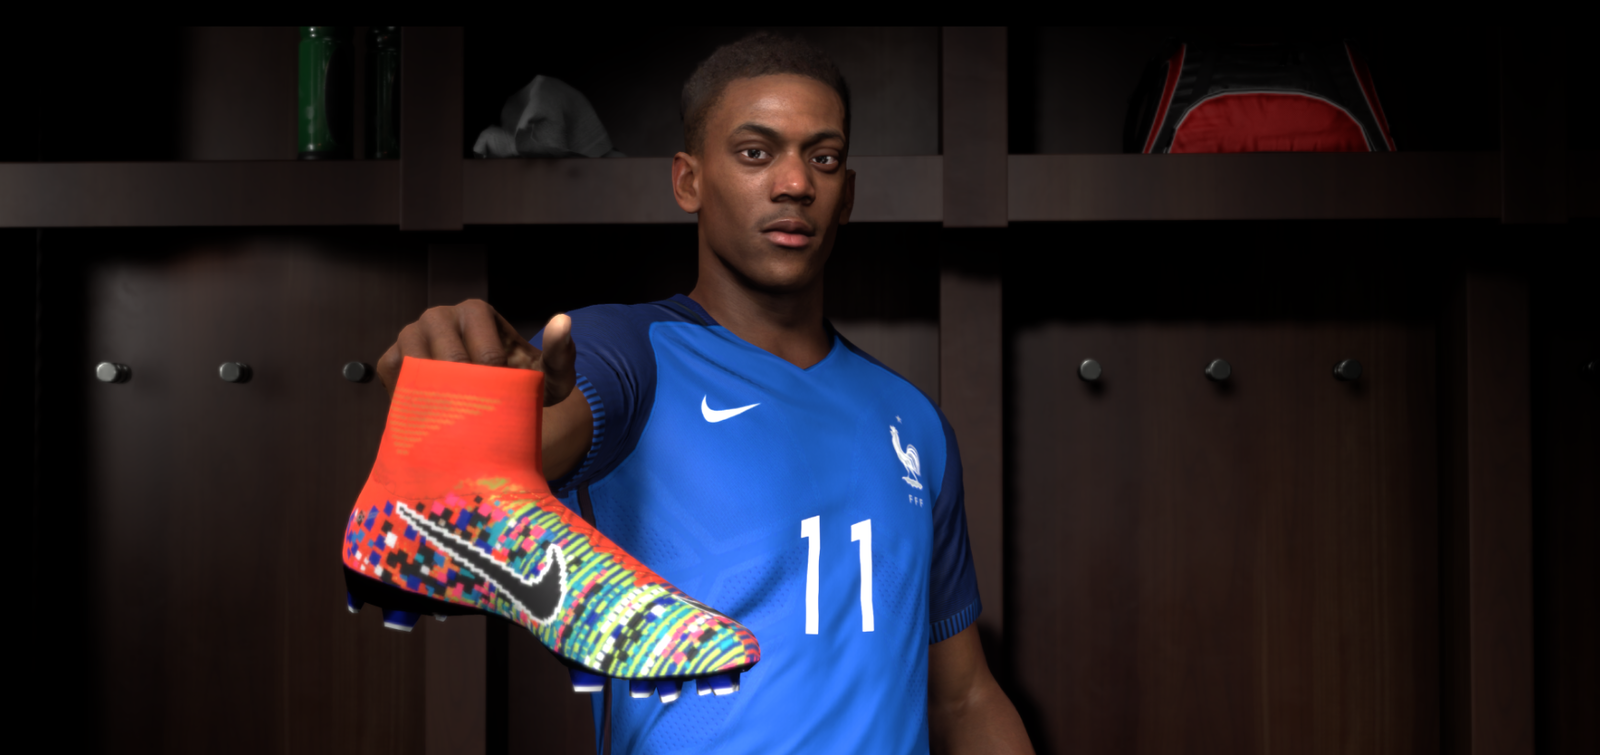 best website 21a43 6a01d Mercurial X EA SPORTS - Nike News